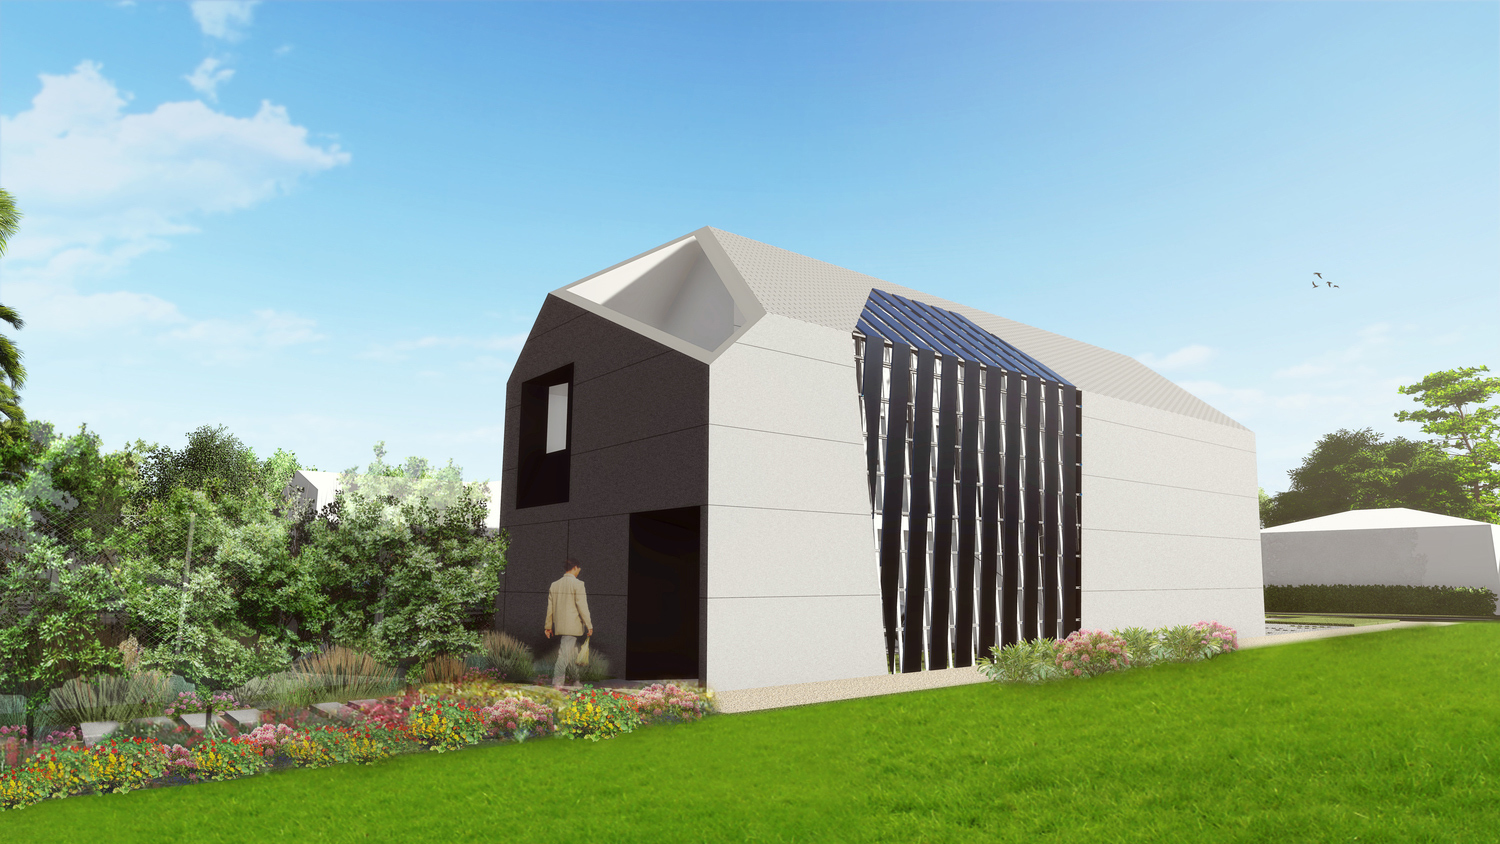 rendering of contemporary cast concrete home